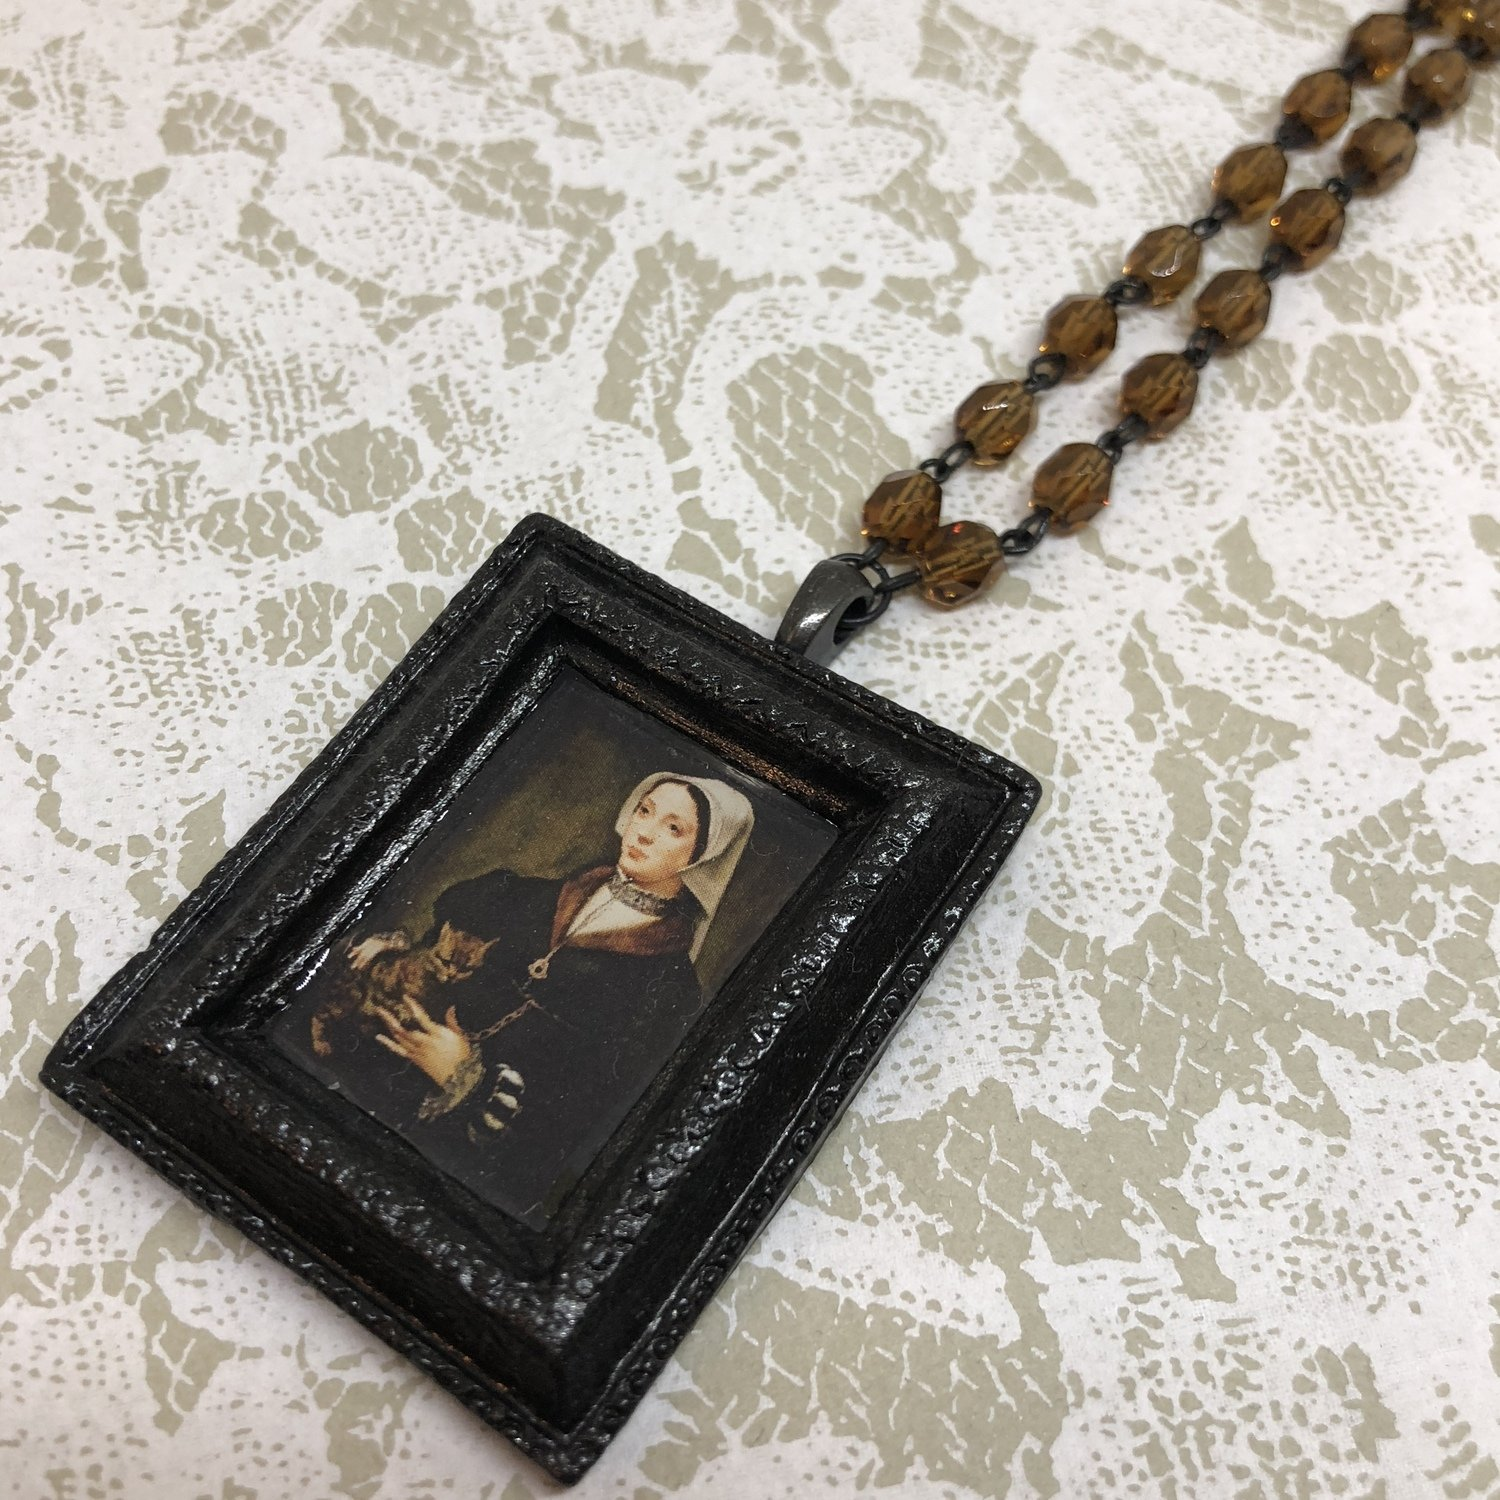 portrait frame necklace (cat lady)